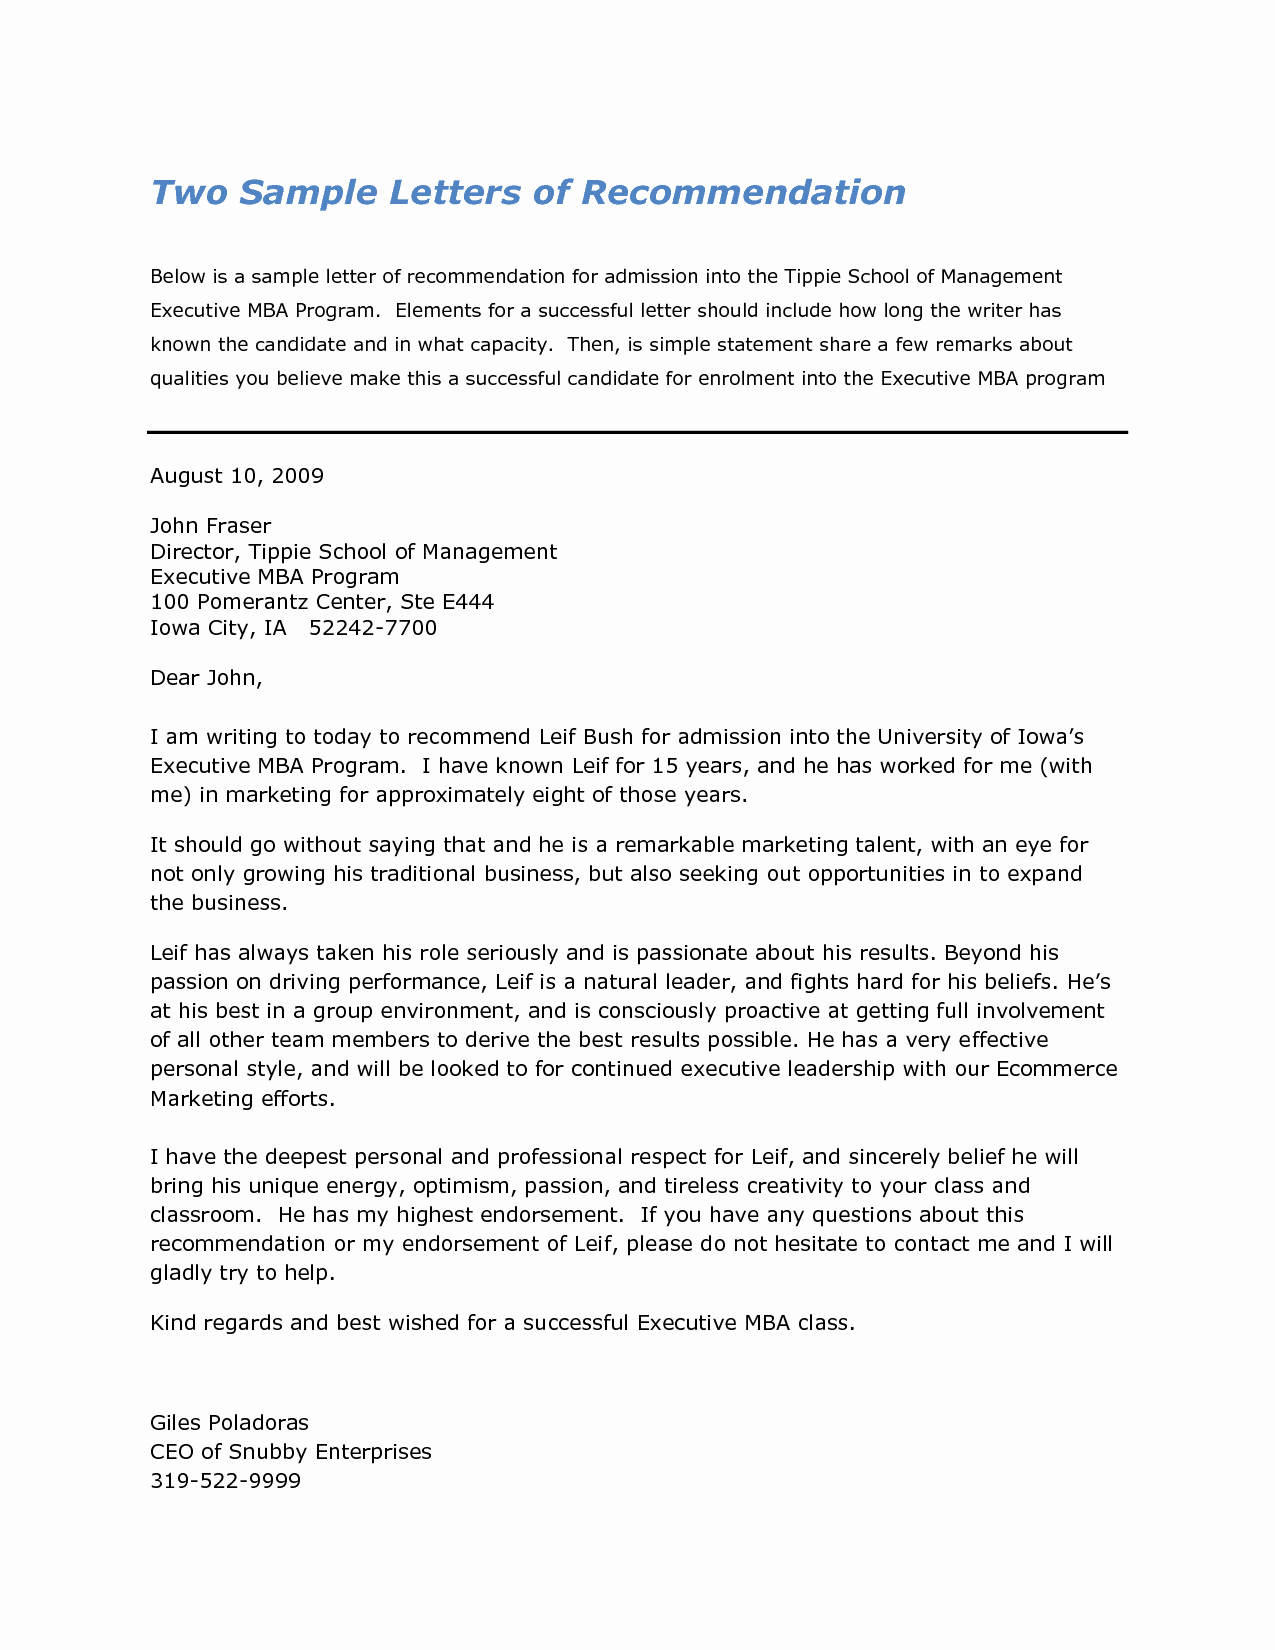 Sample Professional Letter Of Recommendation Inspirational Harvard Business School Letter Re Mendation Sample